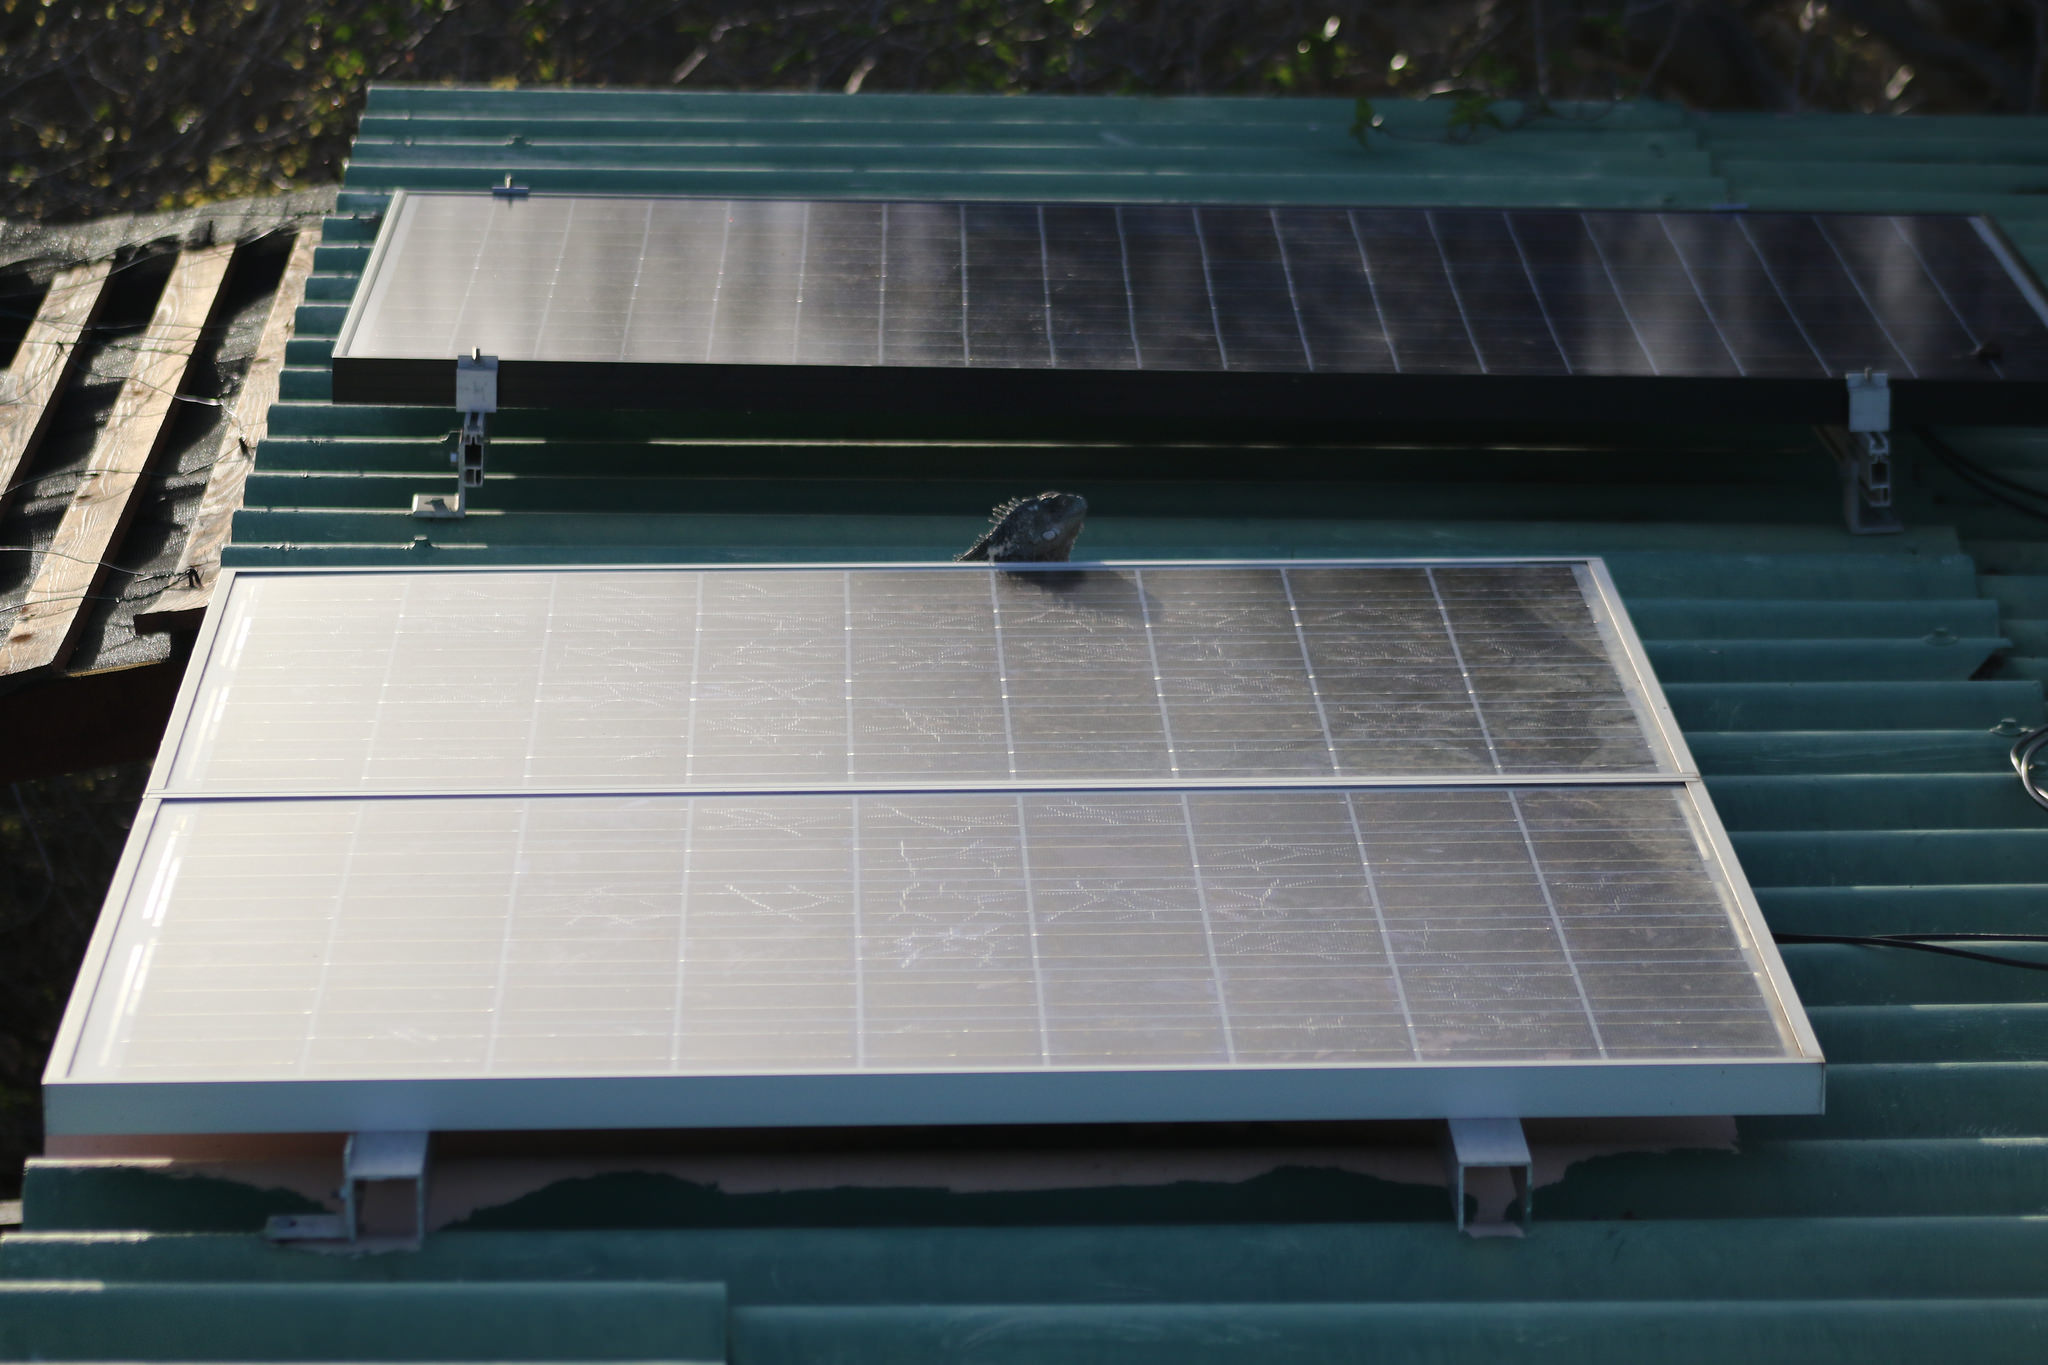 Solar Panels, With an Iguana Visitor